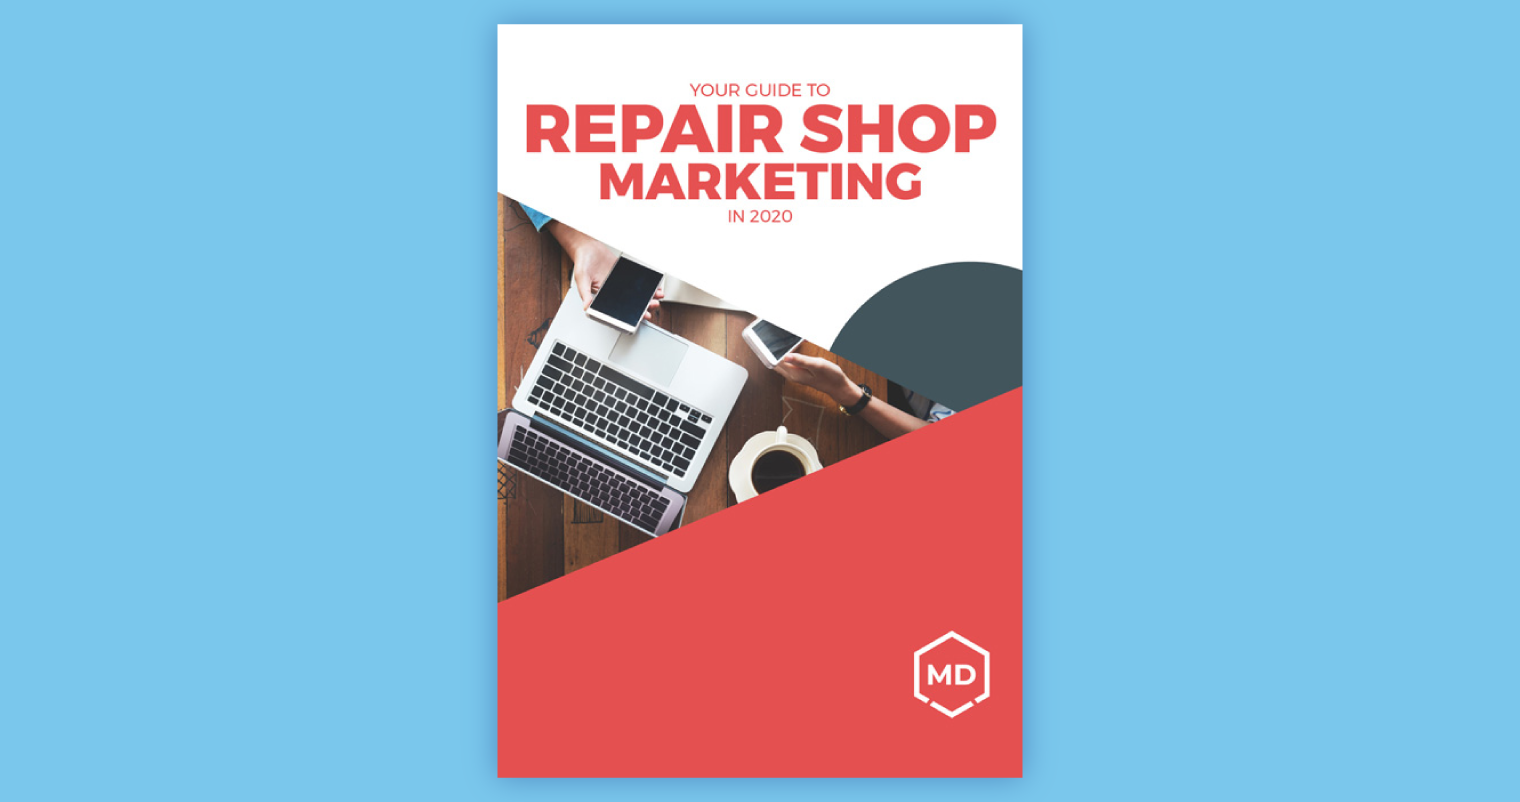 Guide to Repair Shop Marketing in 2020